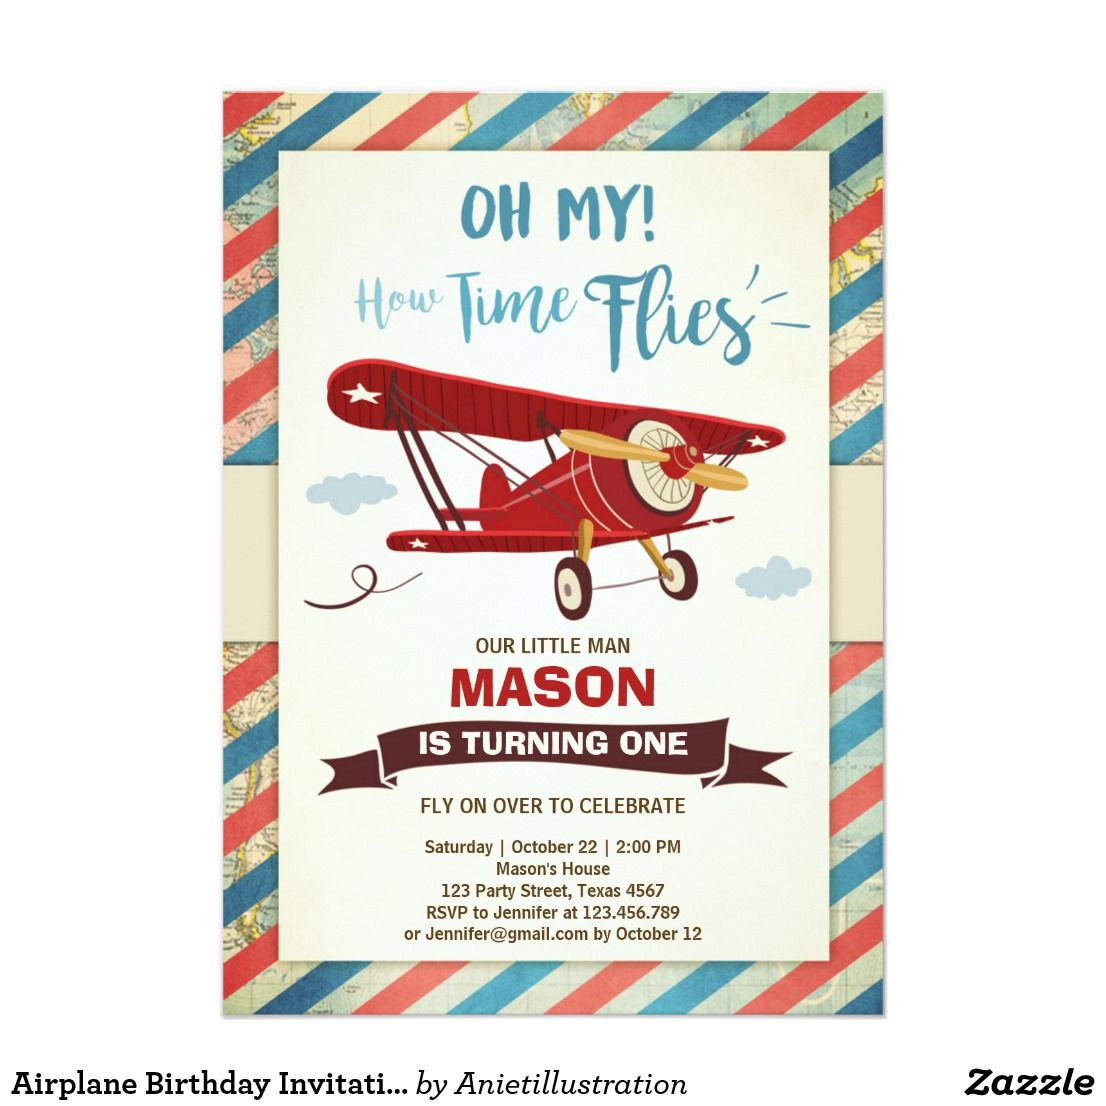 Airplane Birthday Invitation Time flies Plane Boy | Pinterest ...